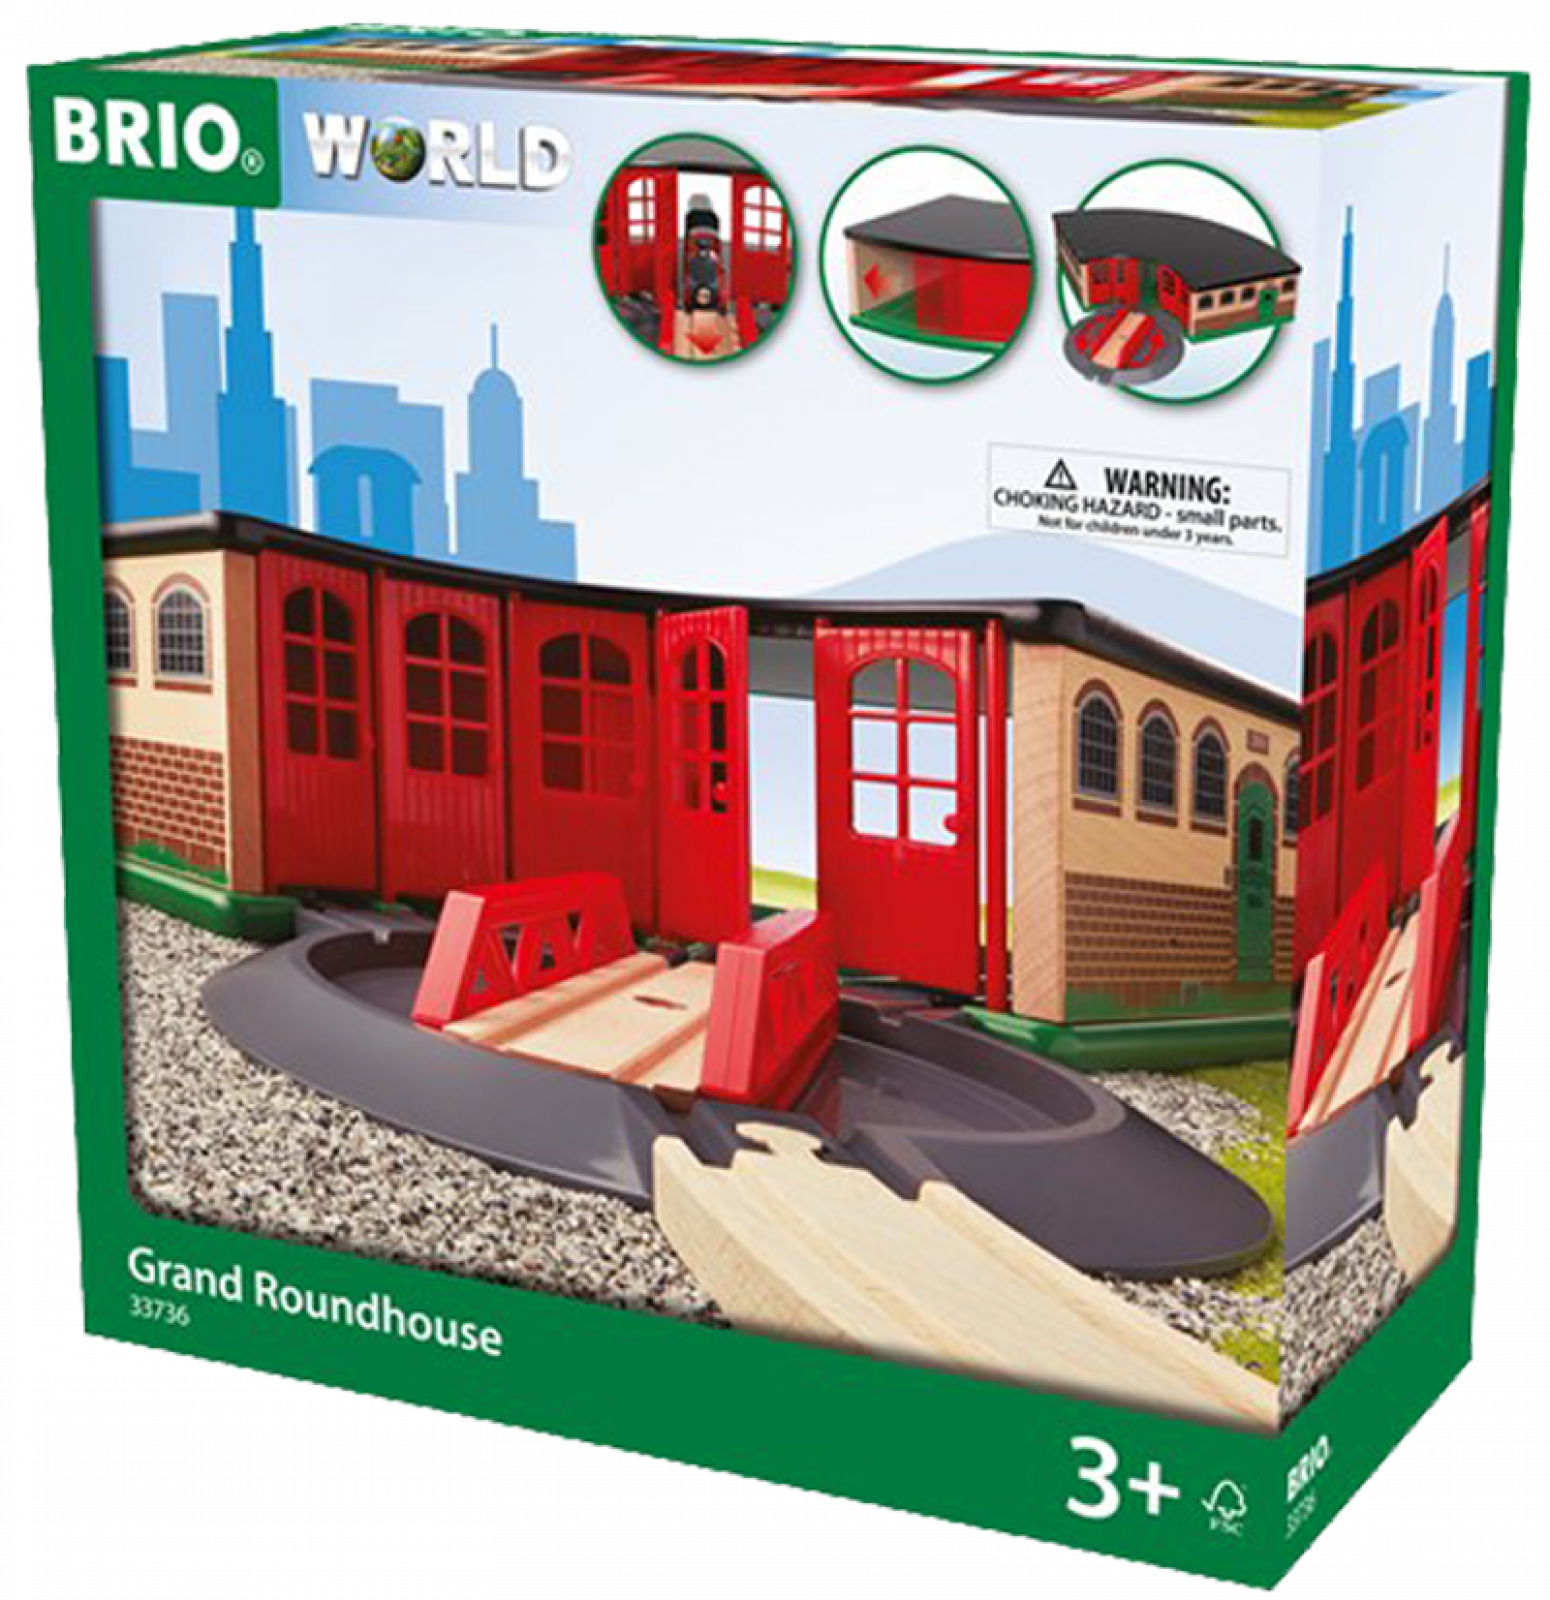 Grand Roundhouse BRIO Wooden Railway Age 3+